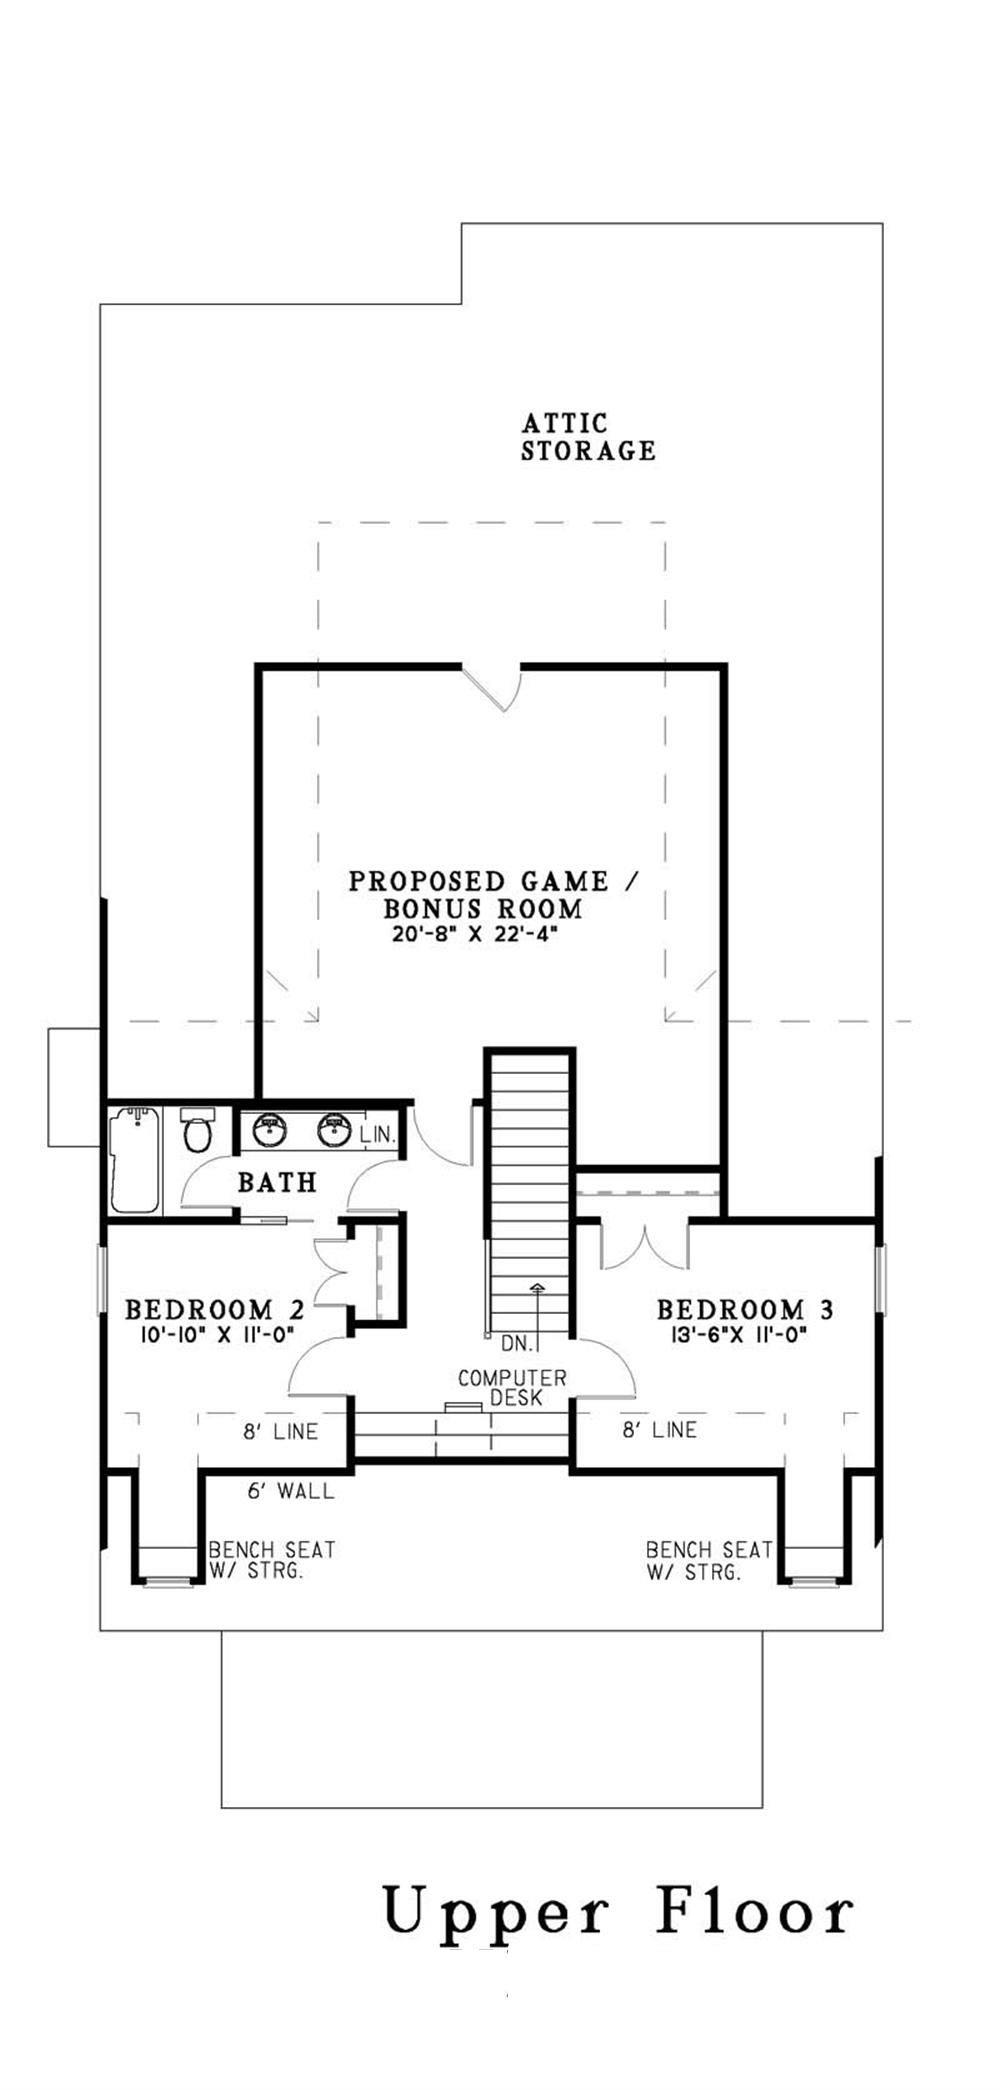 Large Images For House Plan 153 1503